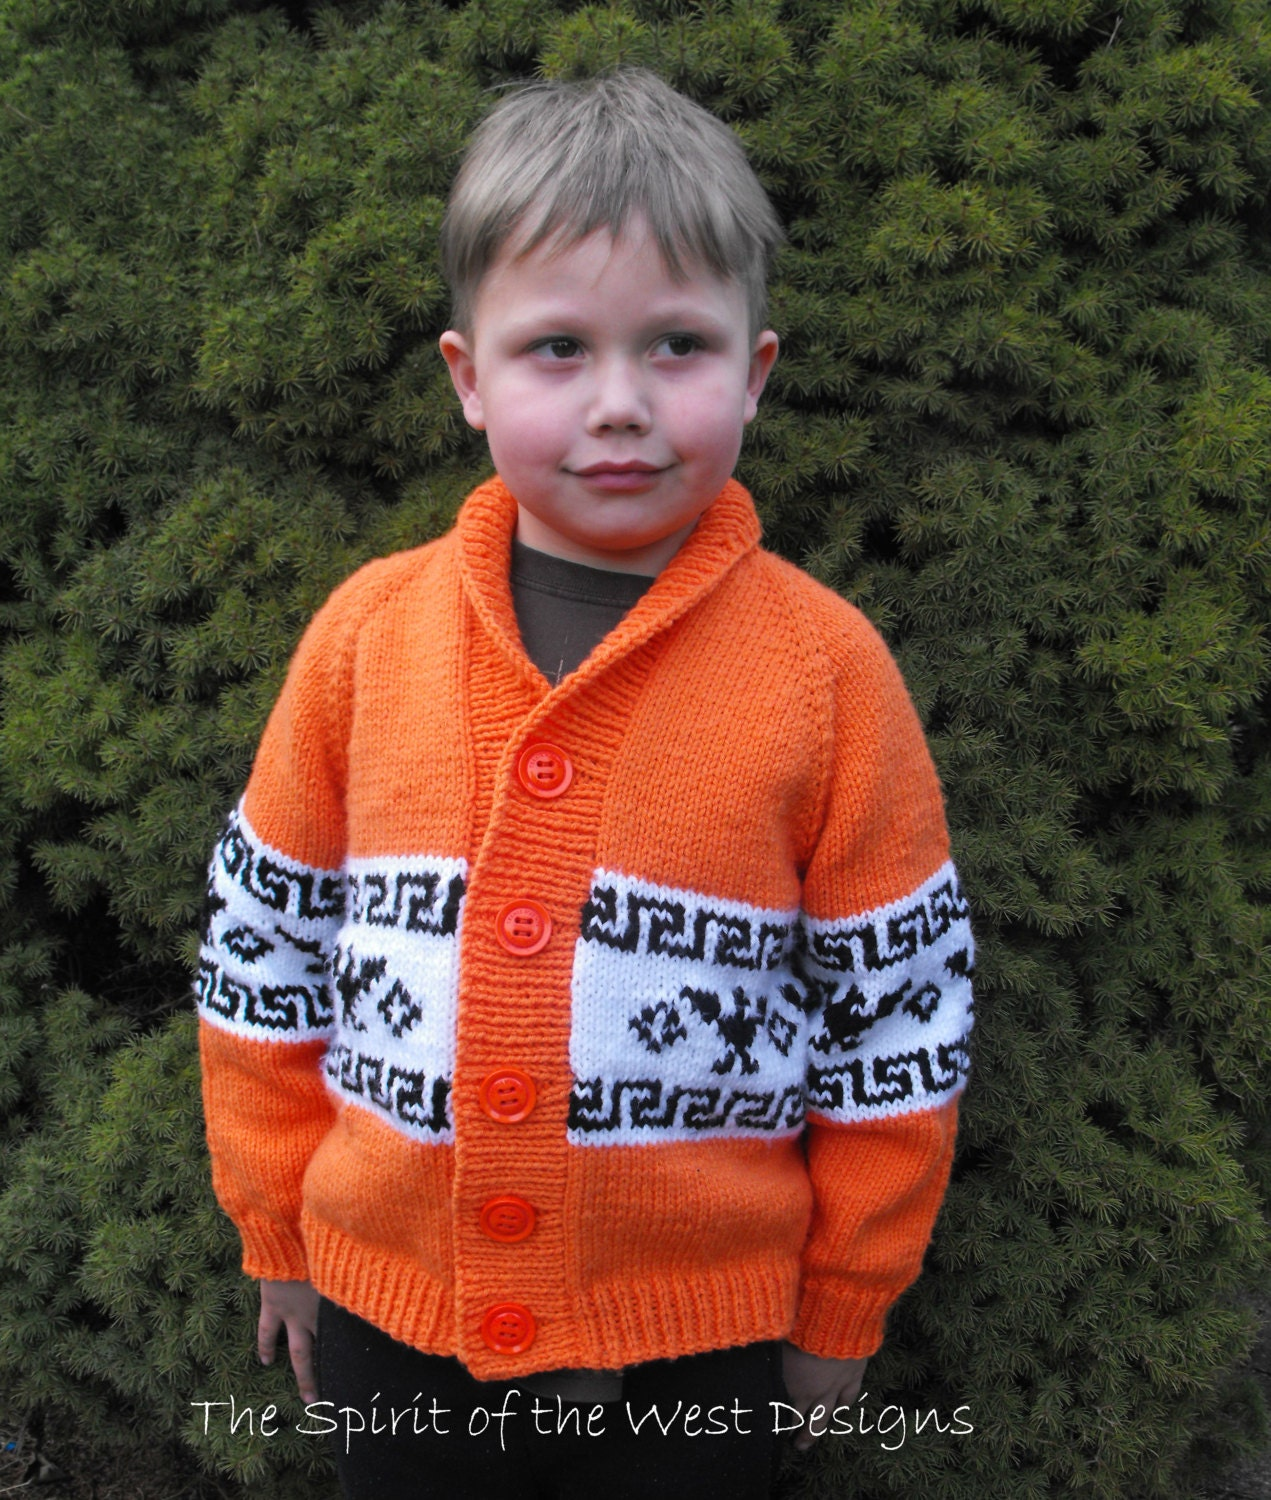 T bird cardigan knitting pattern cowichan style knit sweater this is a digital file bankloansurffo Choice Image